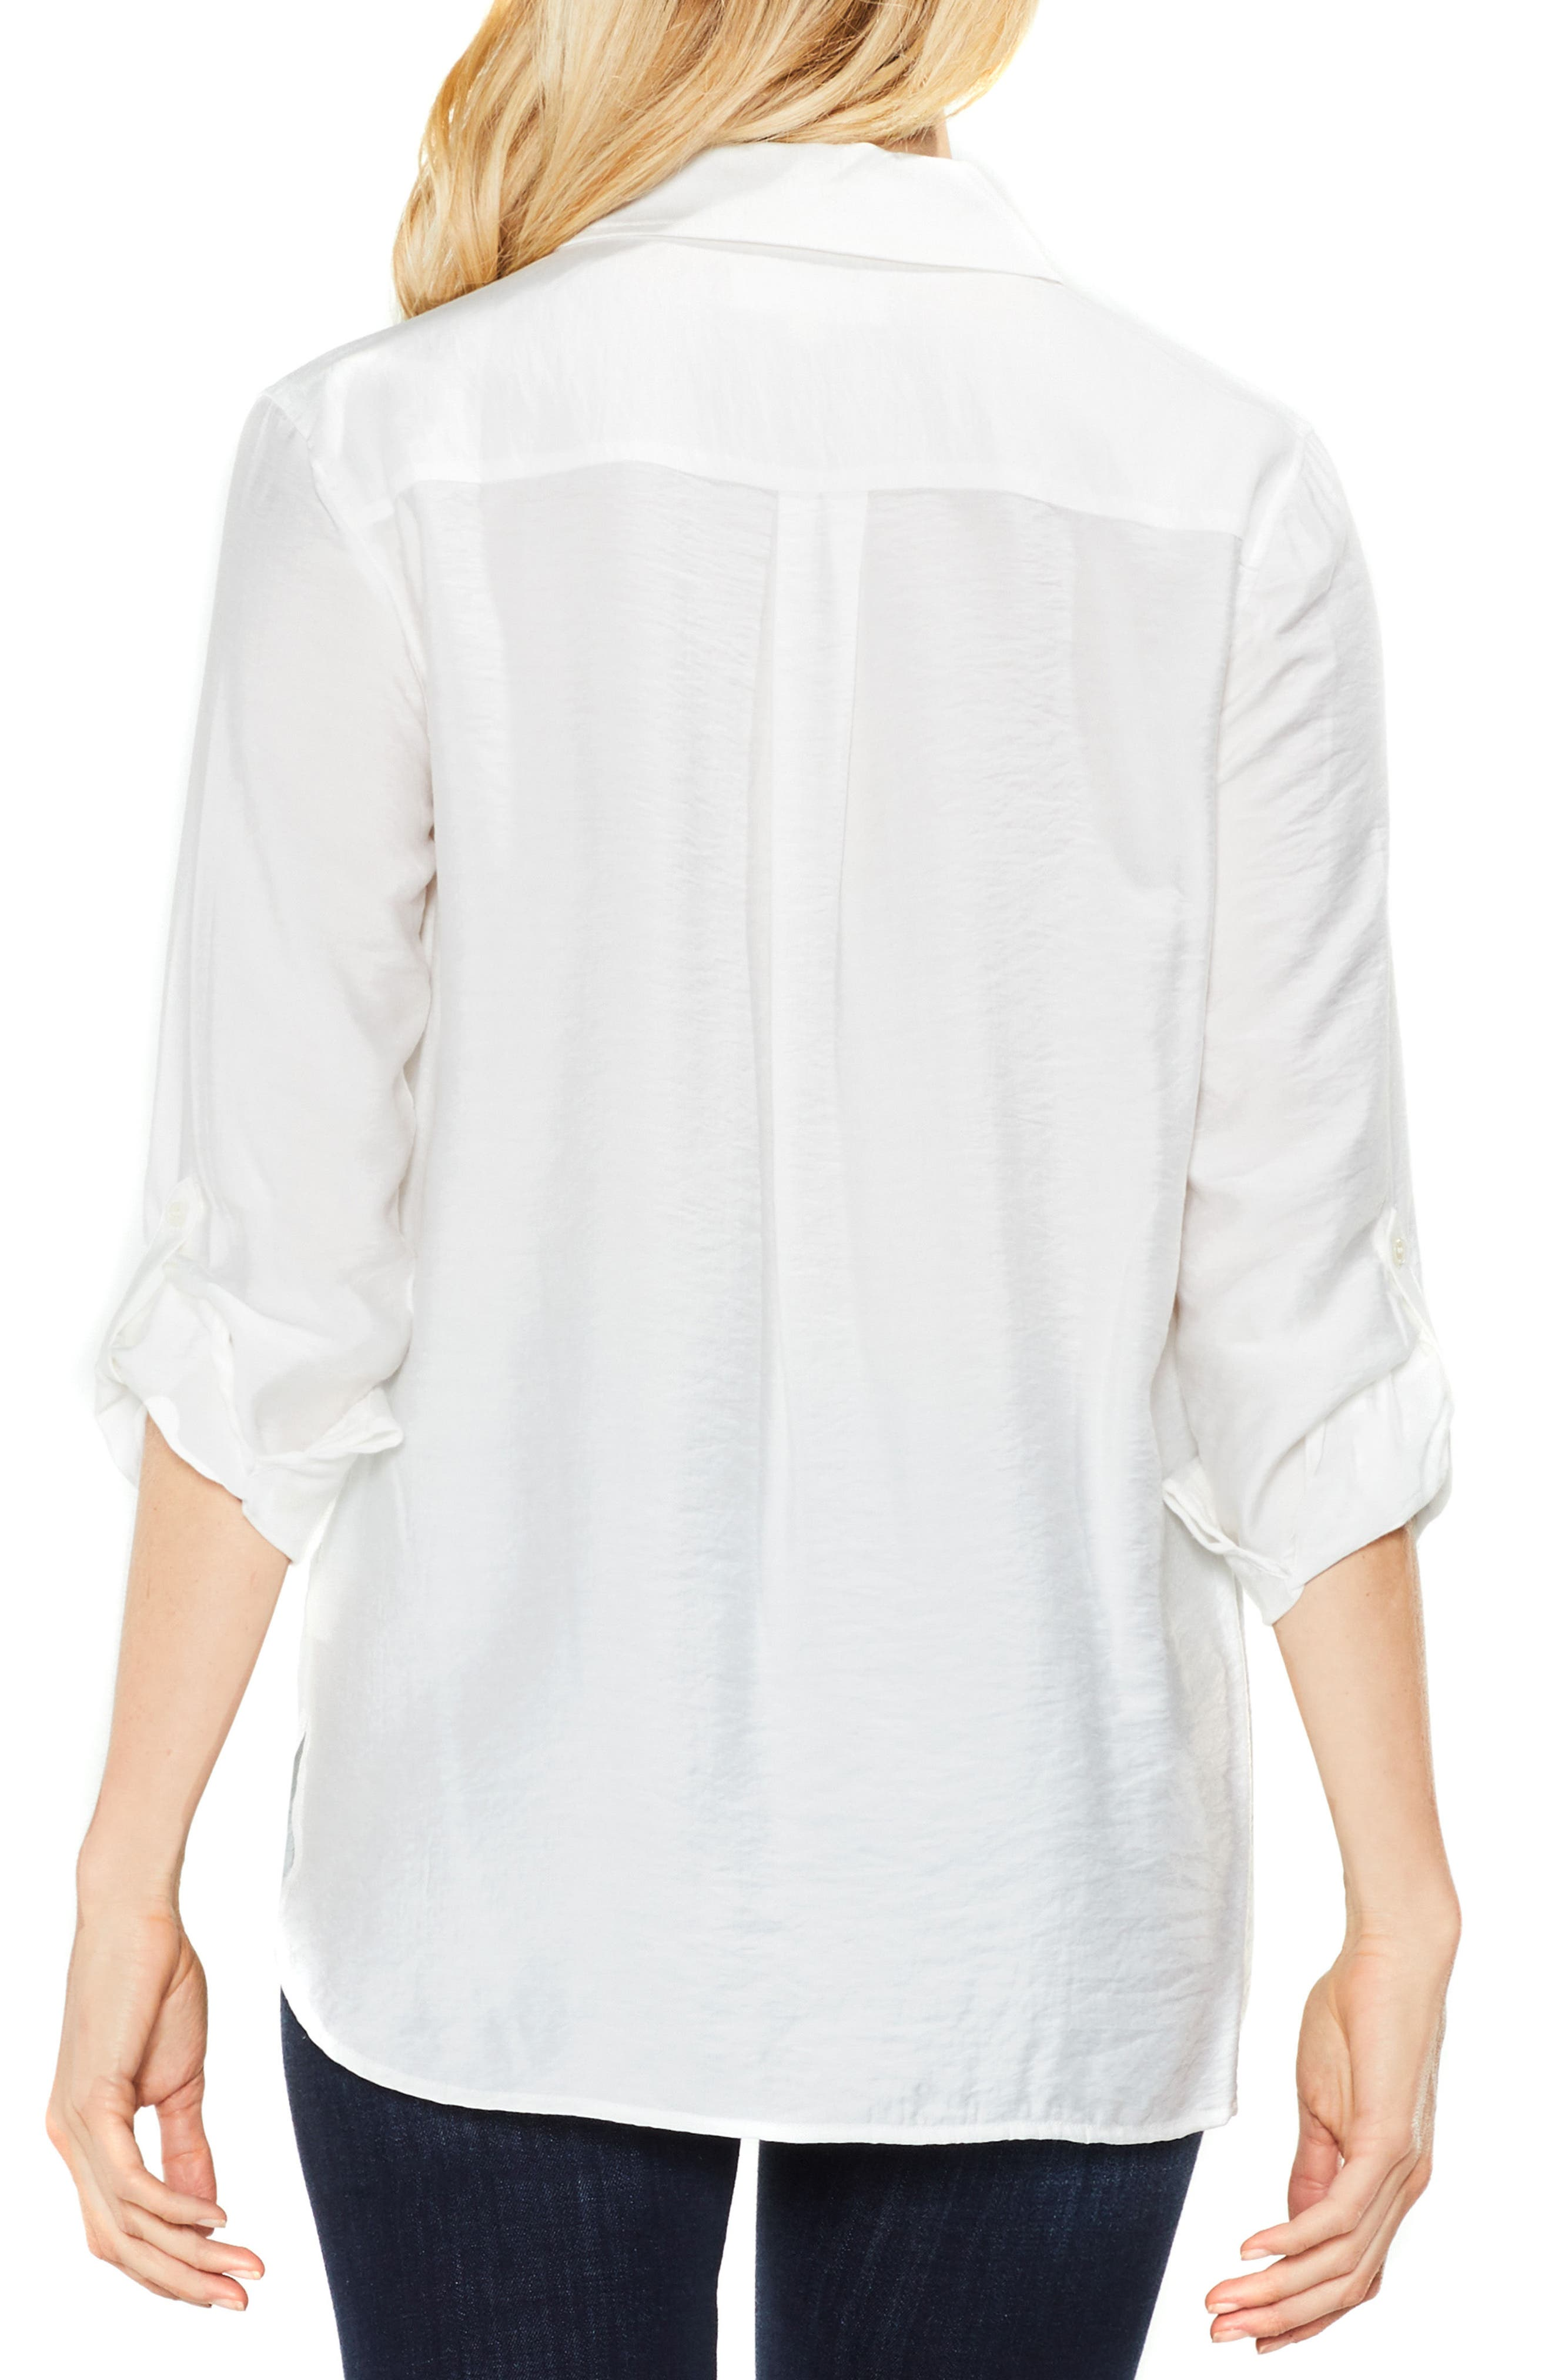 Alternate Image 3  - Two by Vince Camuto Hammered Satin Utility Shirt (Regular & Petite)